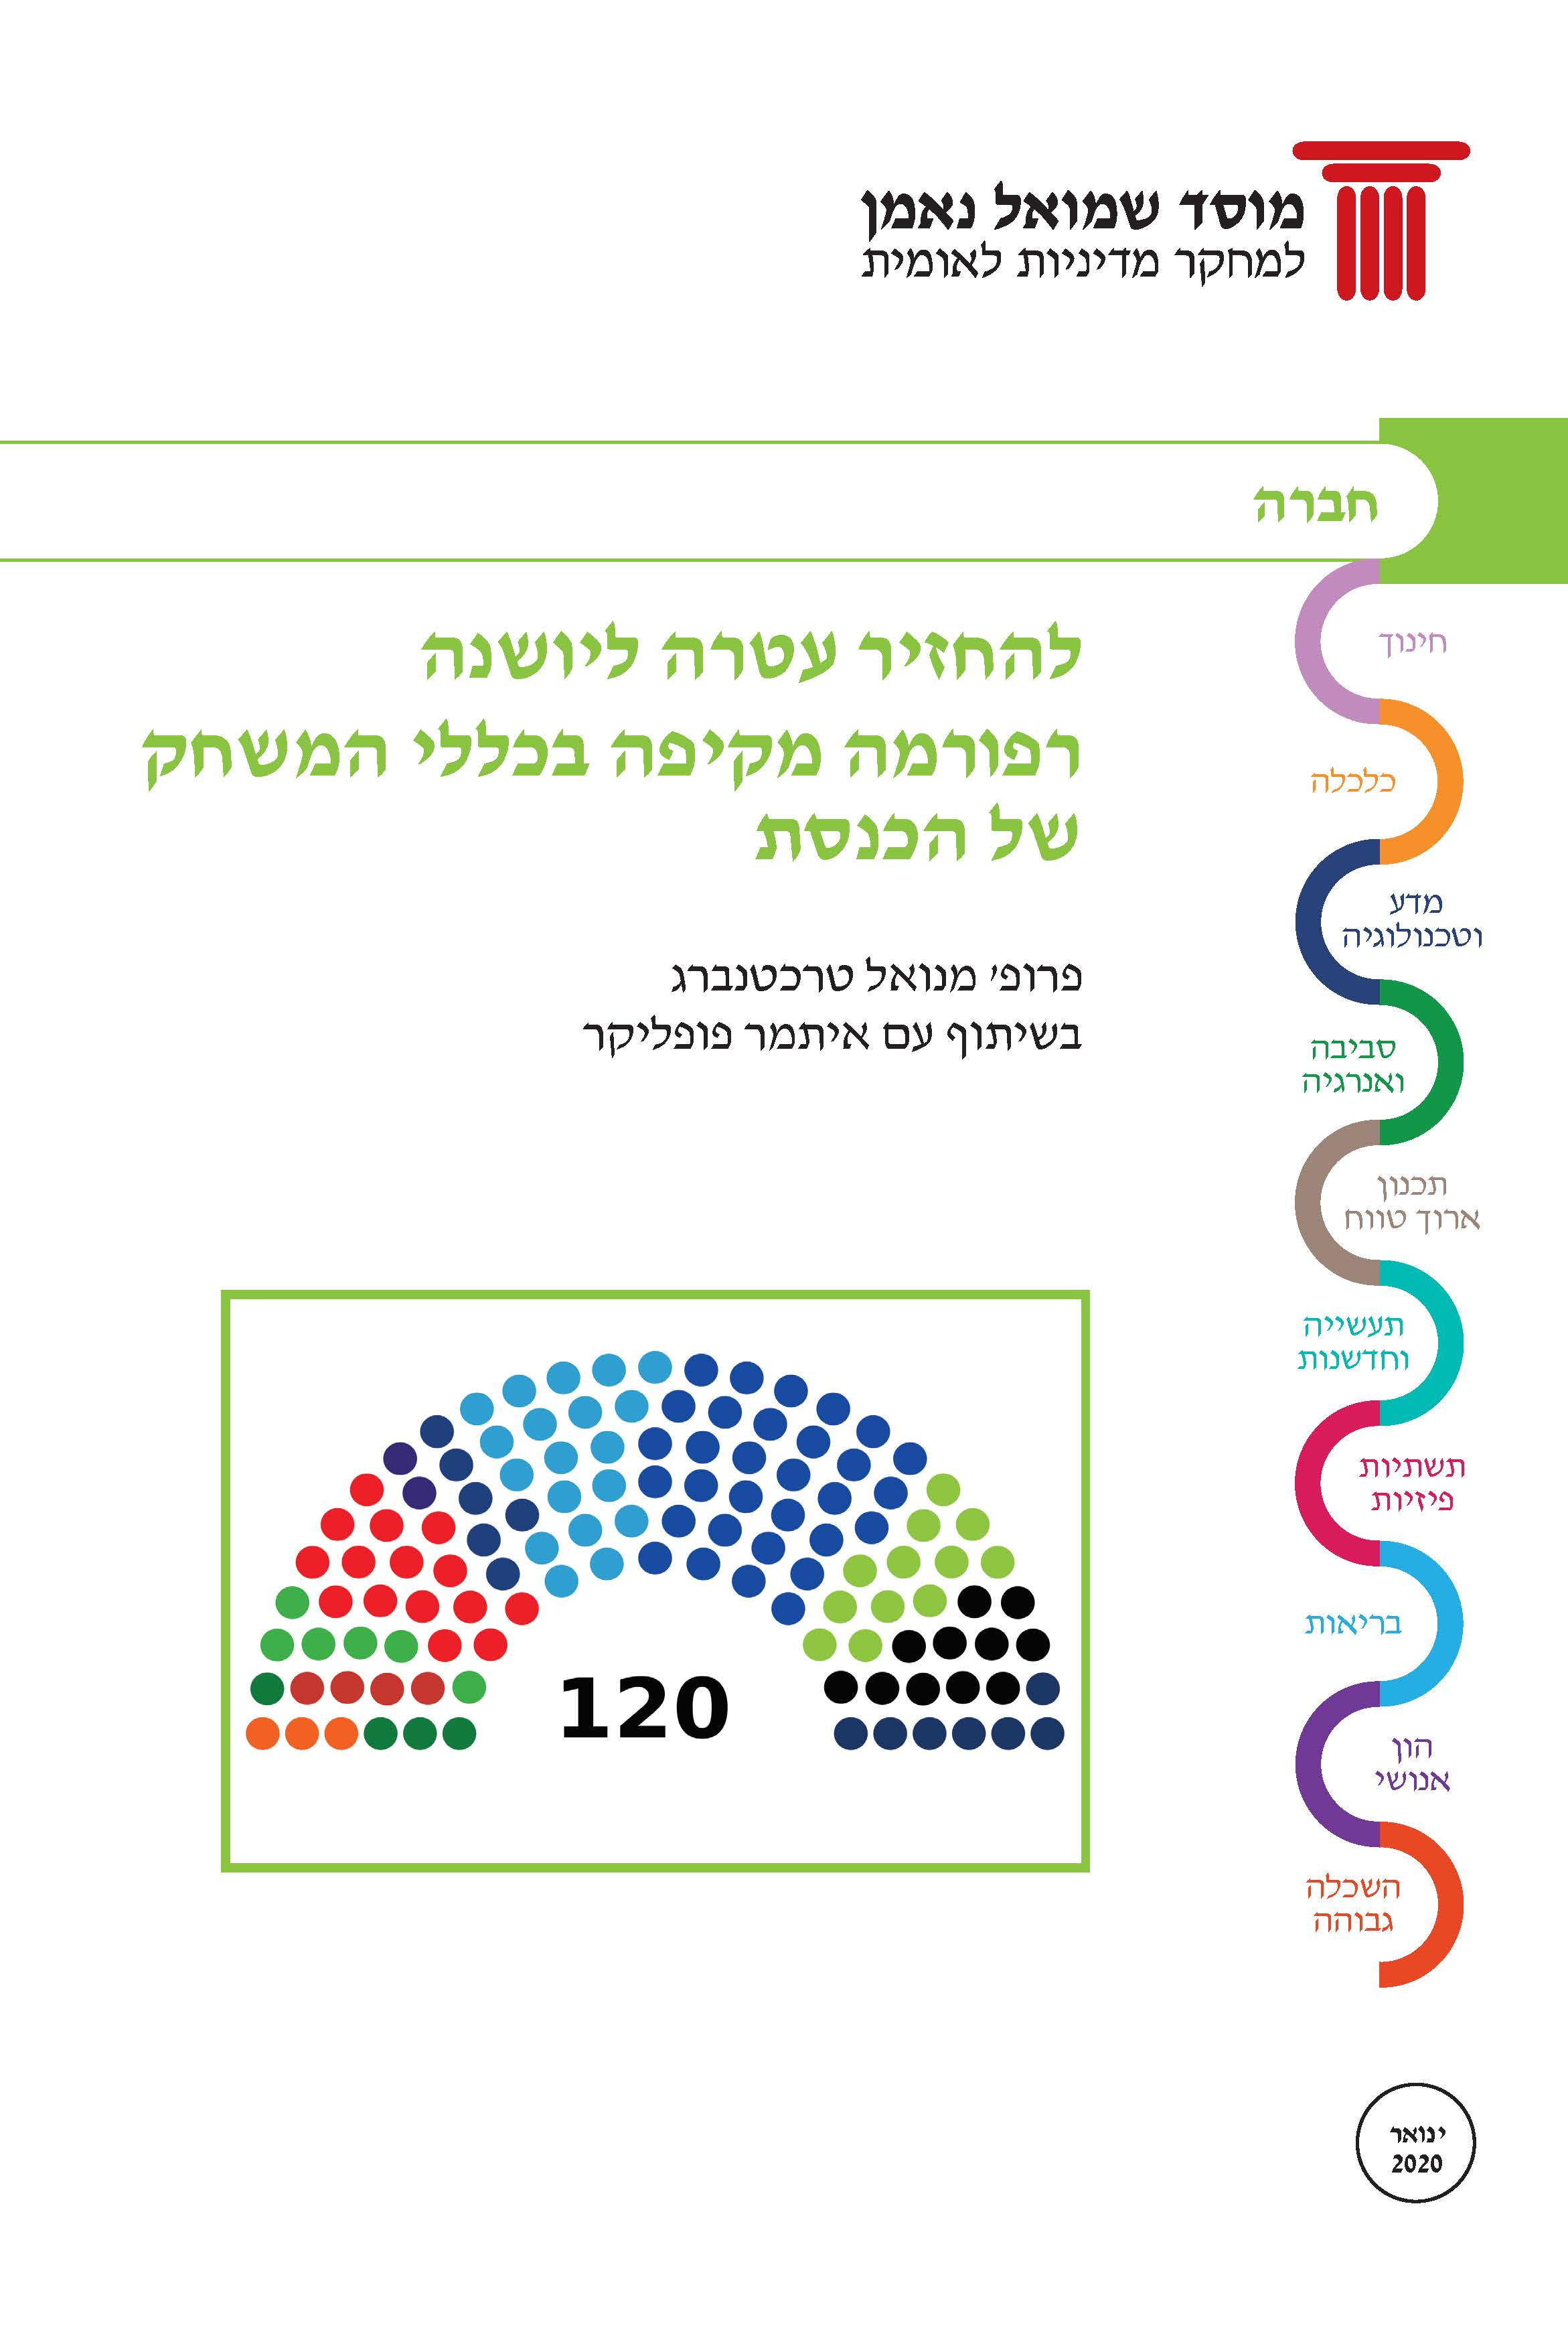 Back to its splendor – reforming the rules of the game of the Knesset